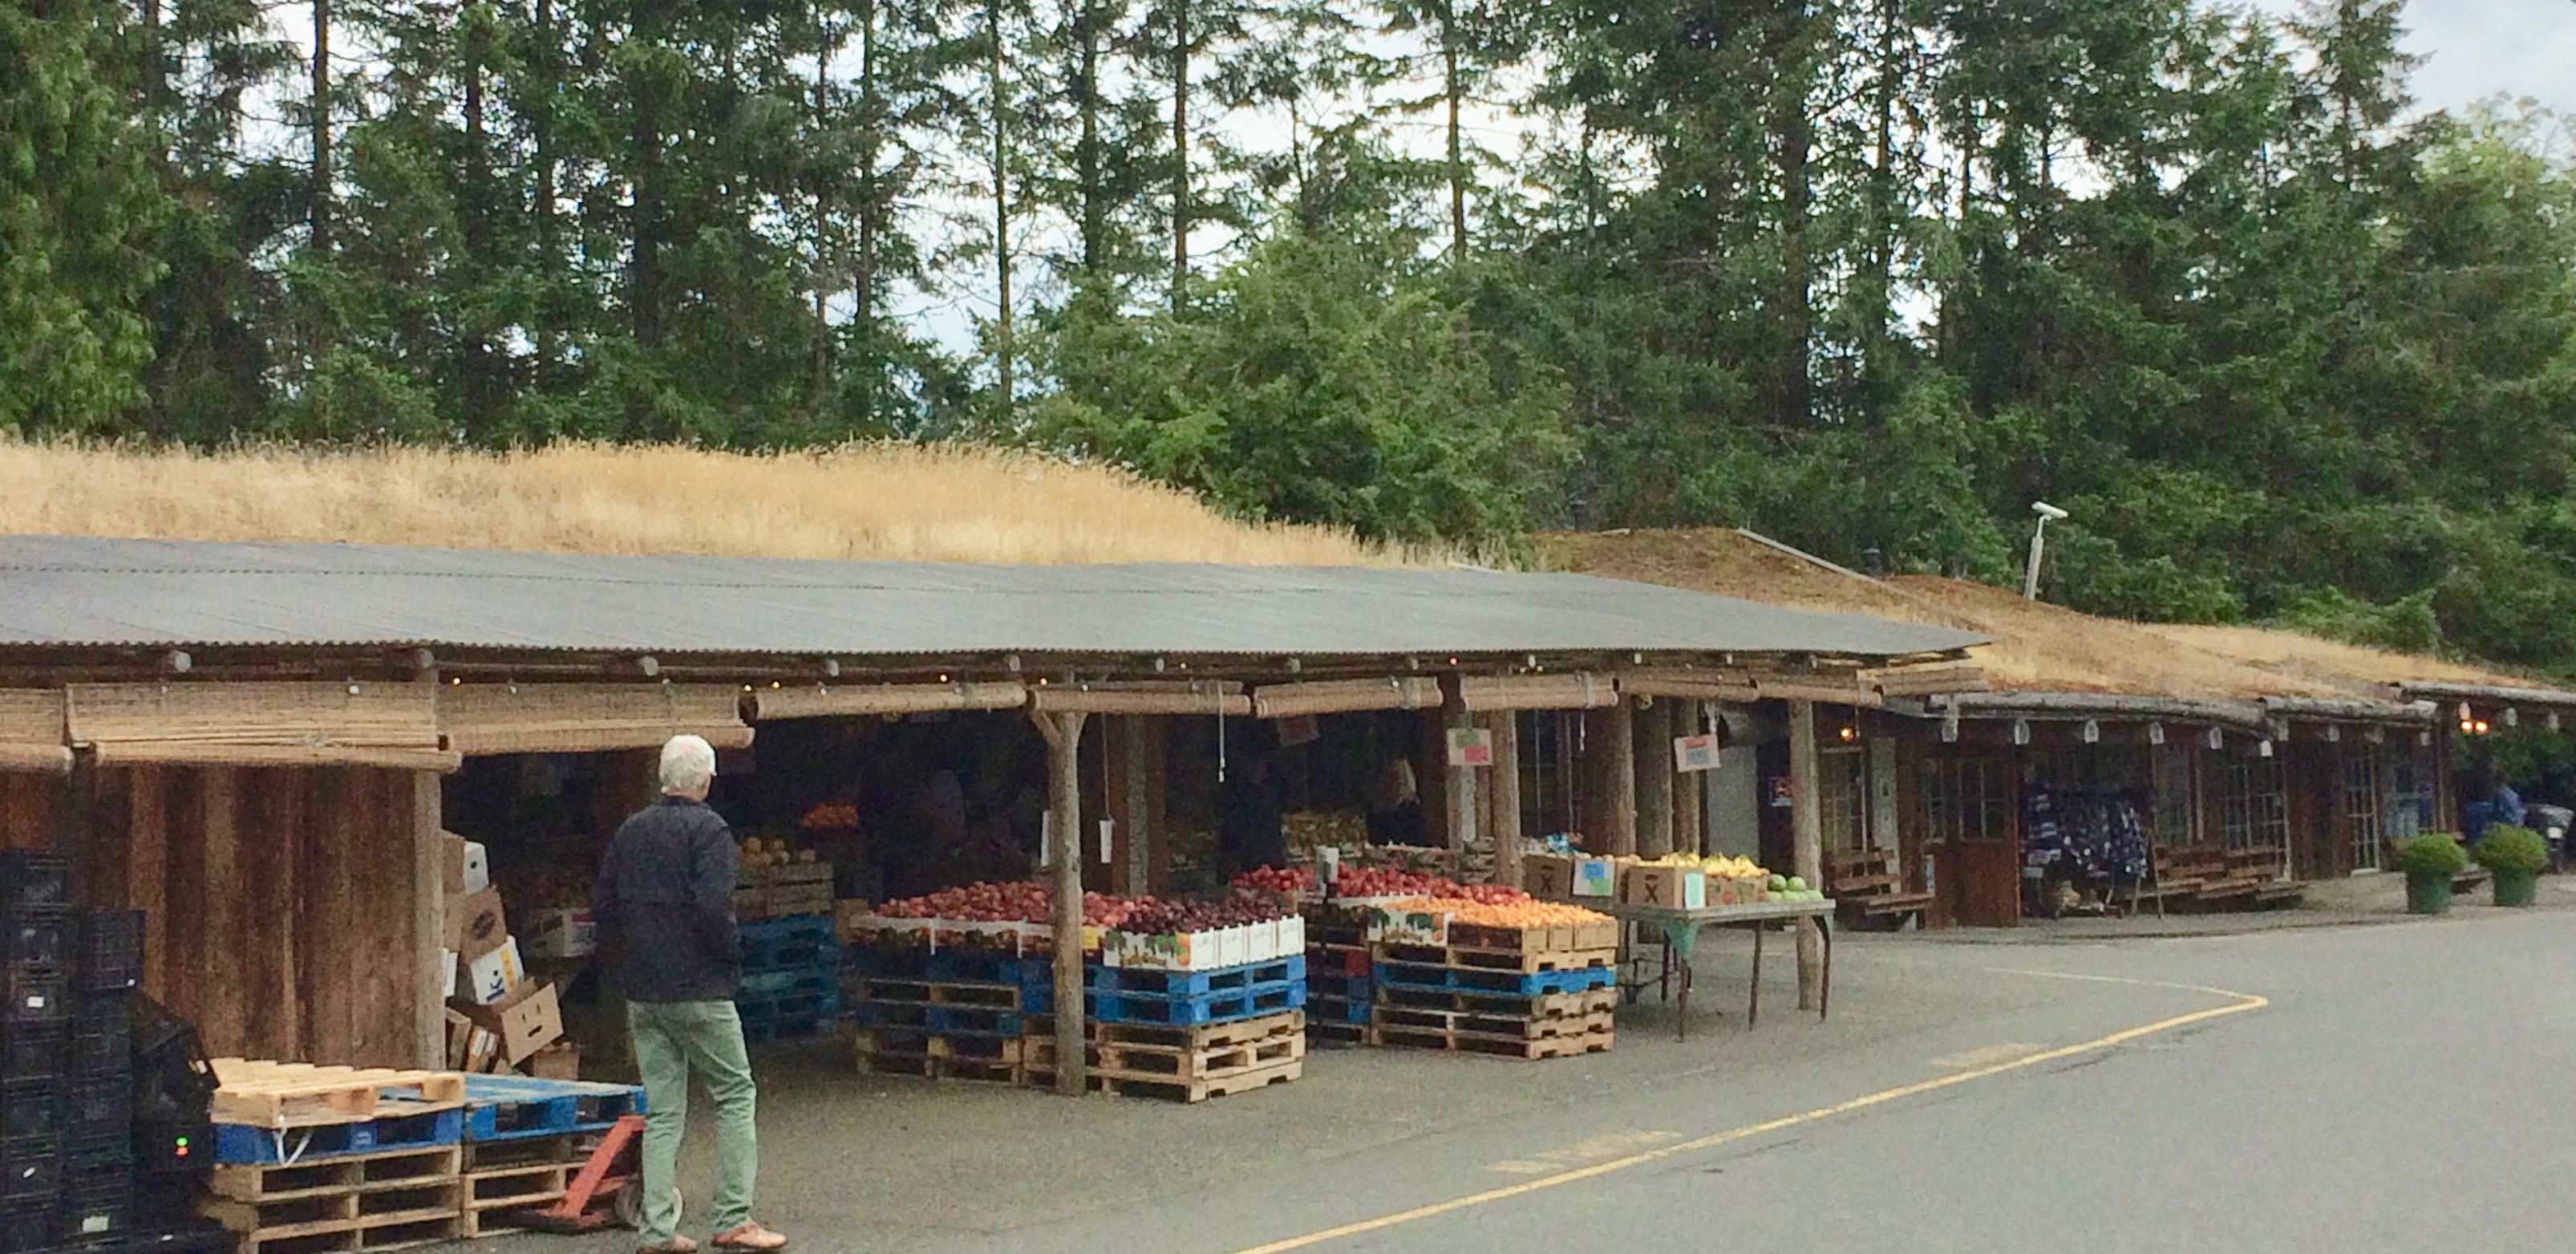 Produce stands at Goats on Roof